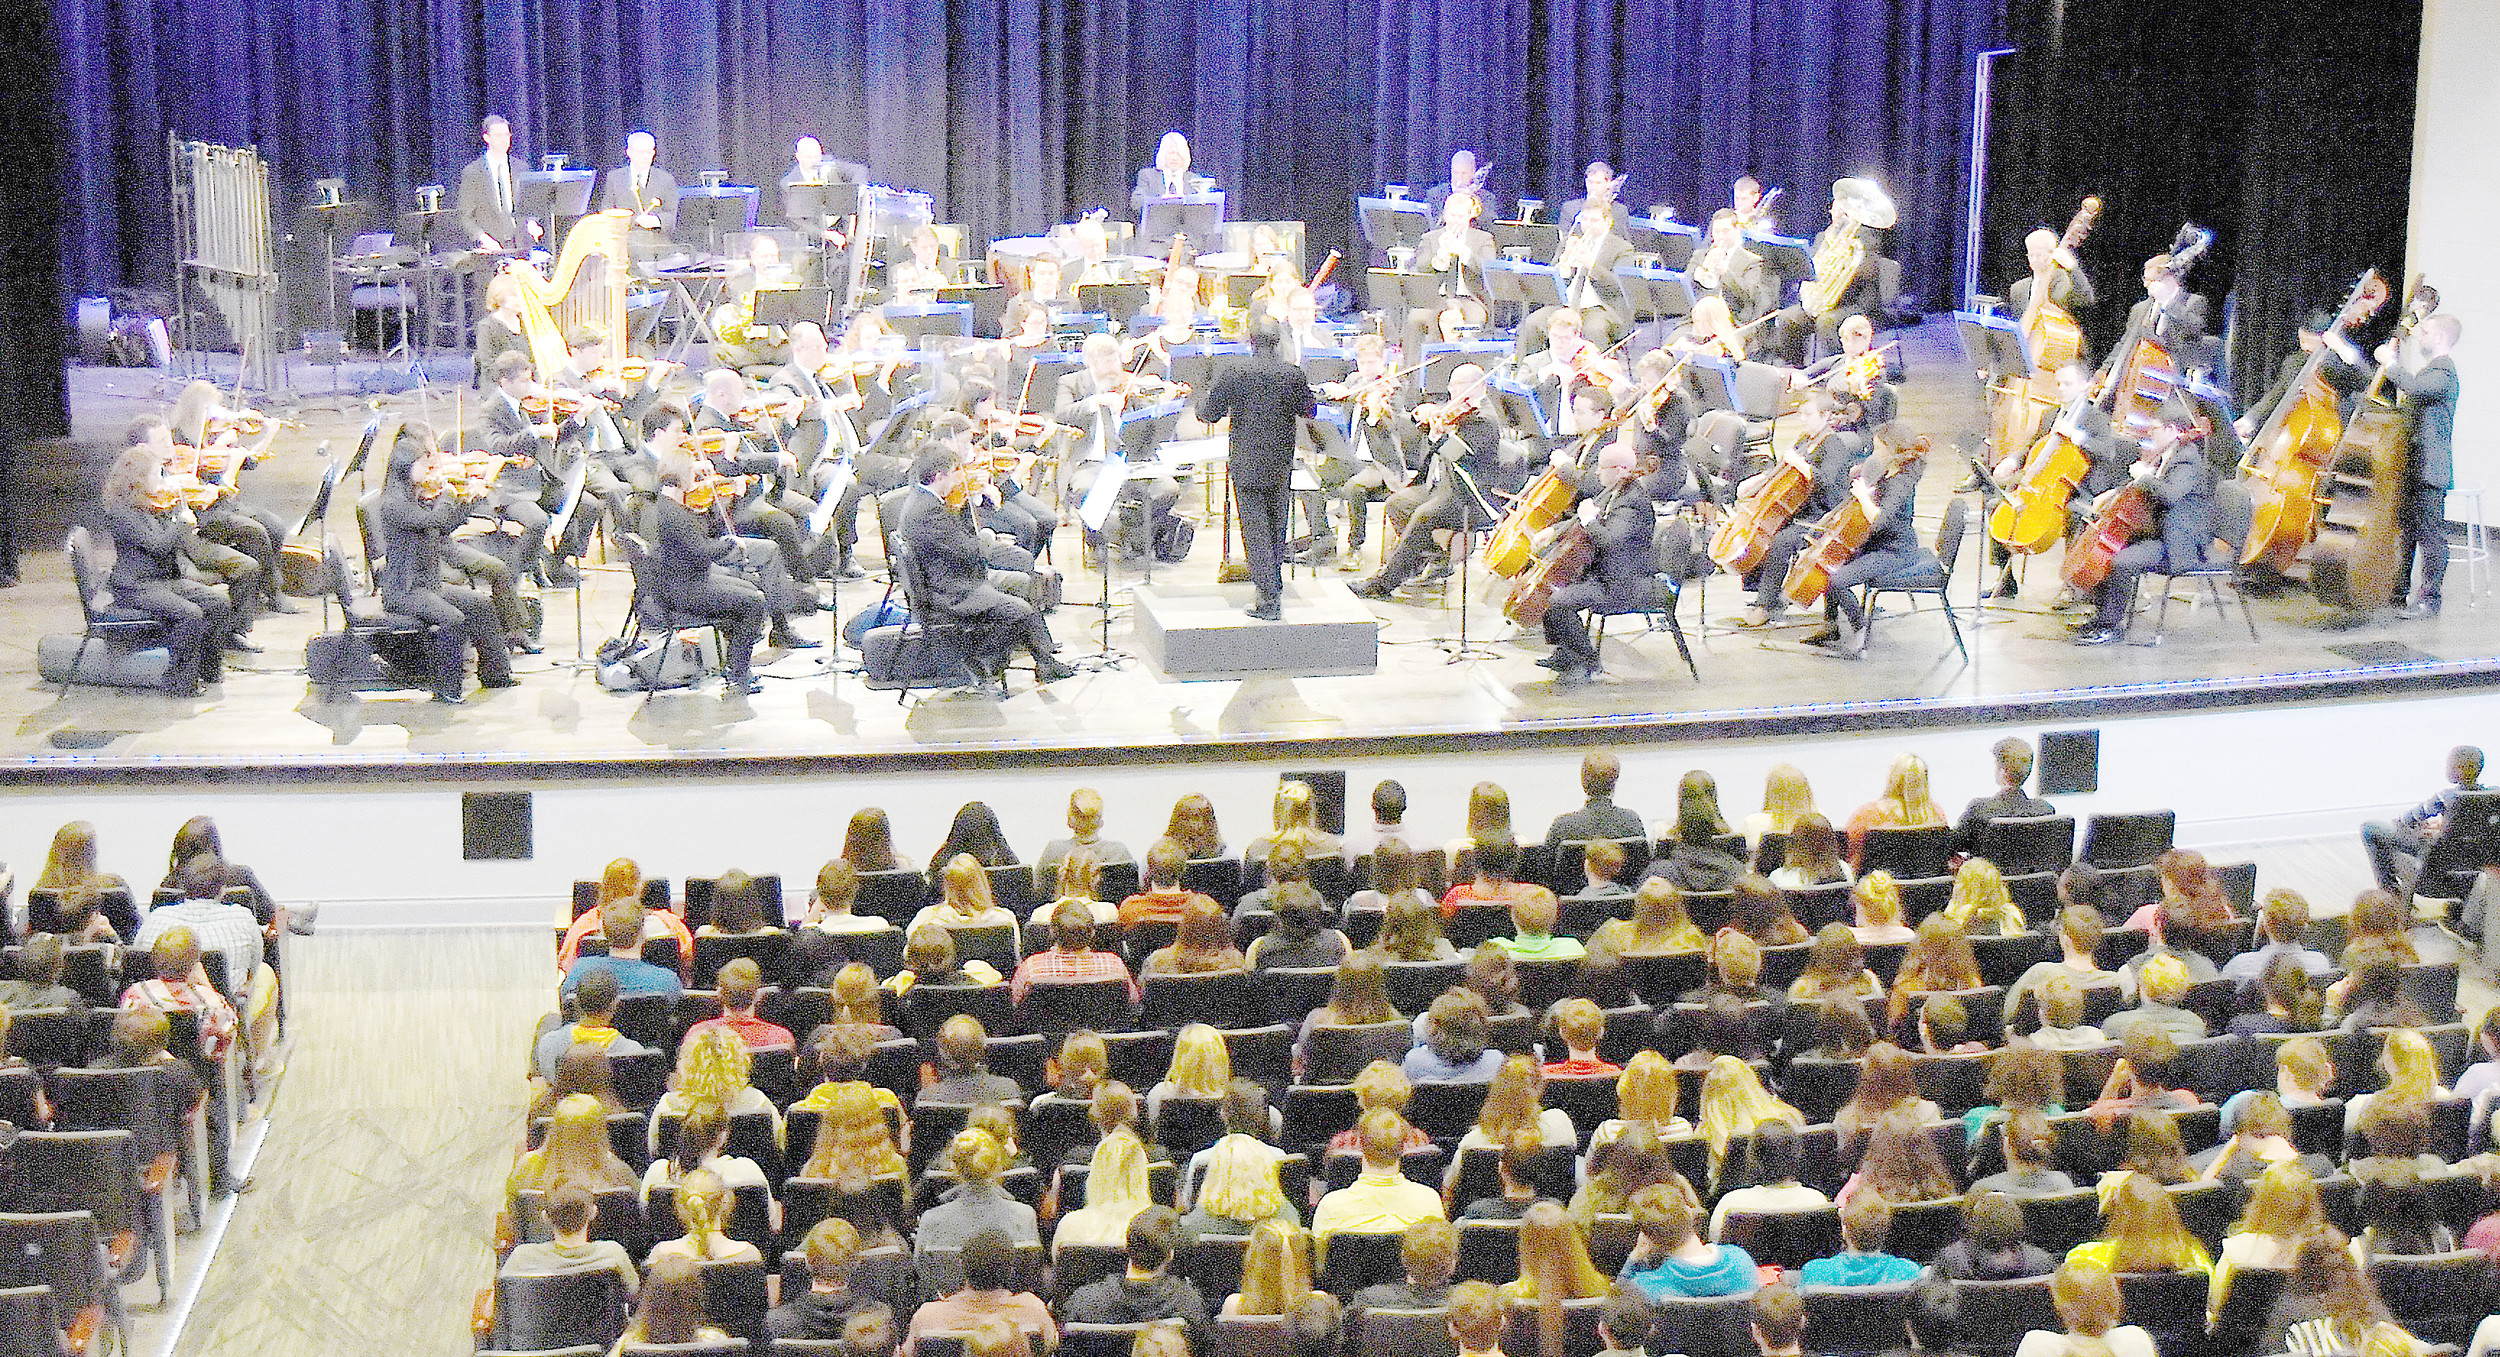 The Alabama Symphony Orchestra performed a concert in the Pam Brown Theater Wednesday afternoon for members of the bands from Walker and Cordova high schools and Maddox Middle School, as well as members of the Encore Show Choir at Walker. Daily Mountain Eagle - Ron Harris